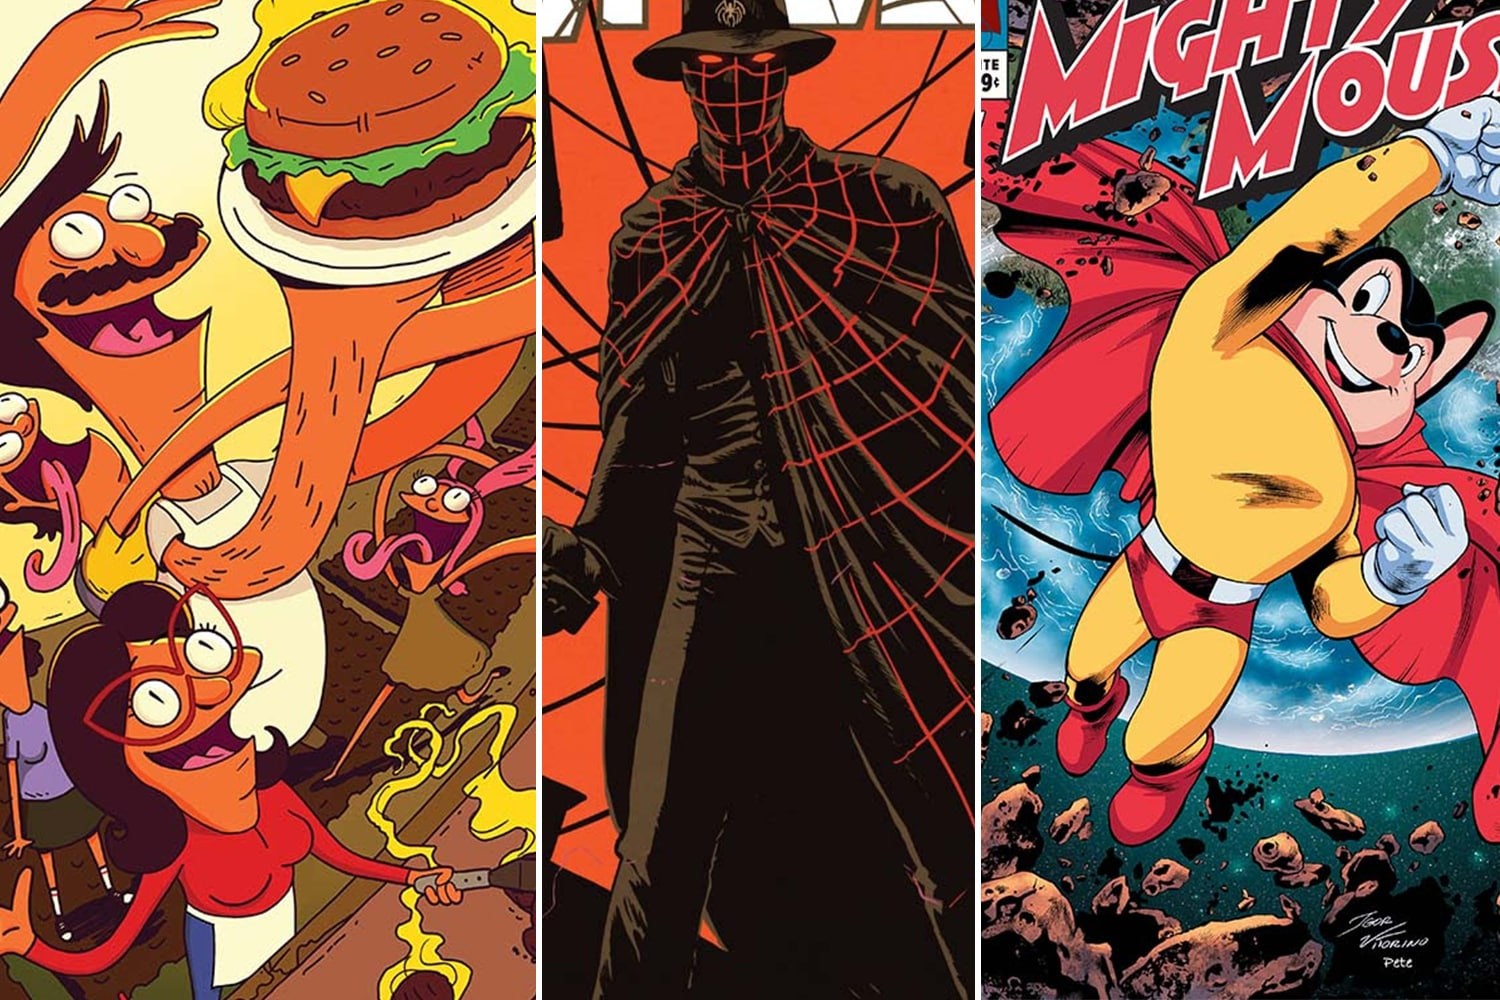 Dynamite launches wave three of their free first issues featuring 12 titles